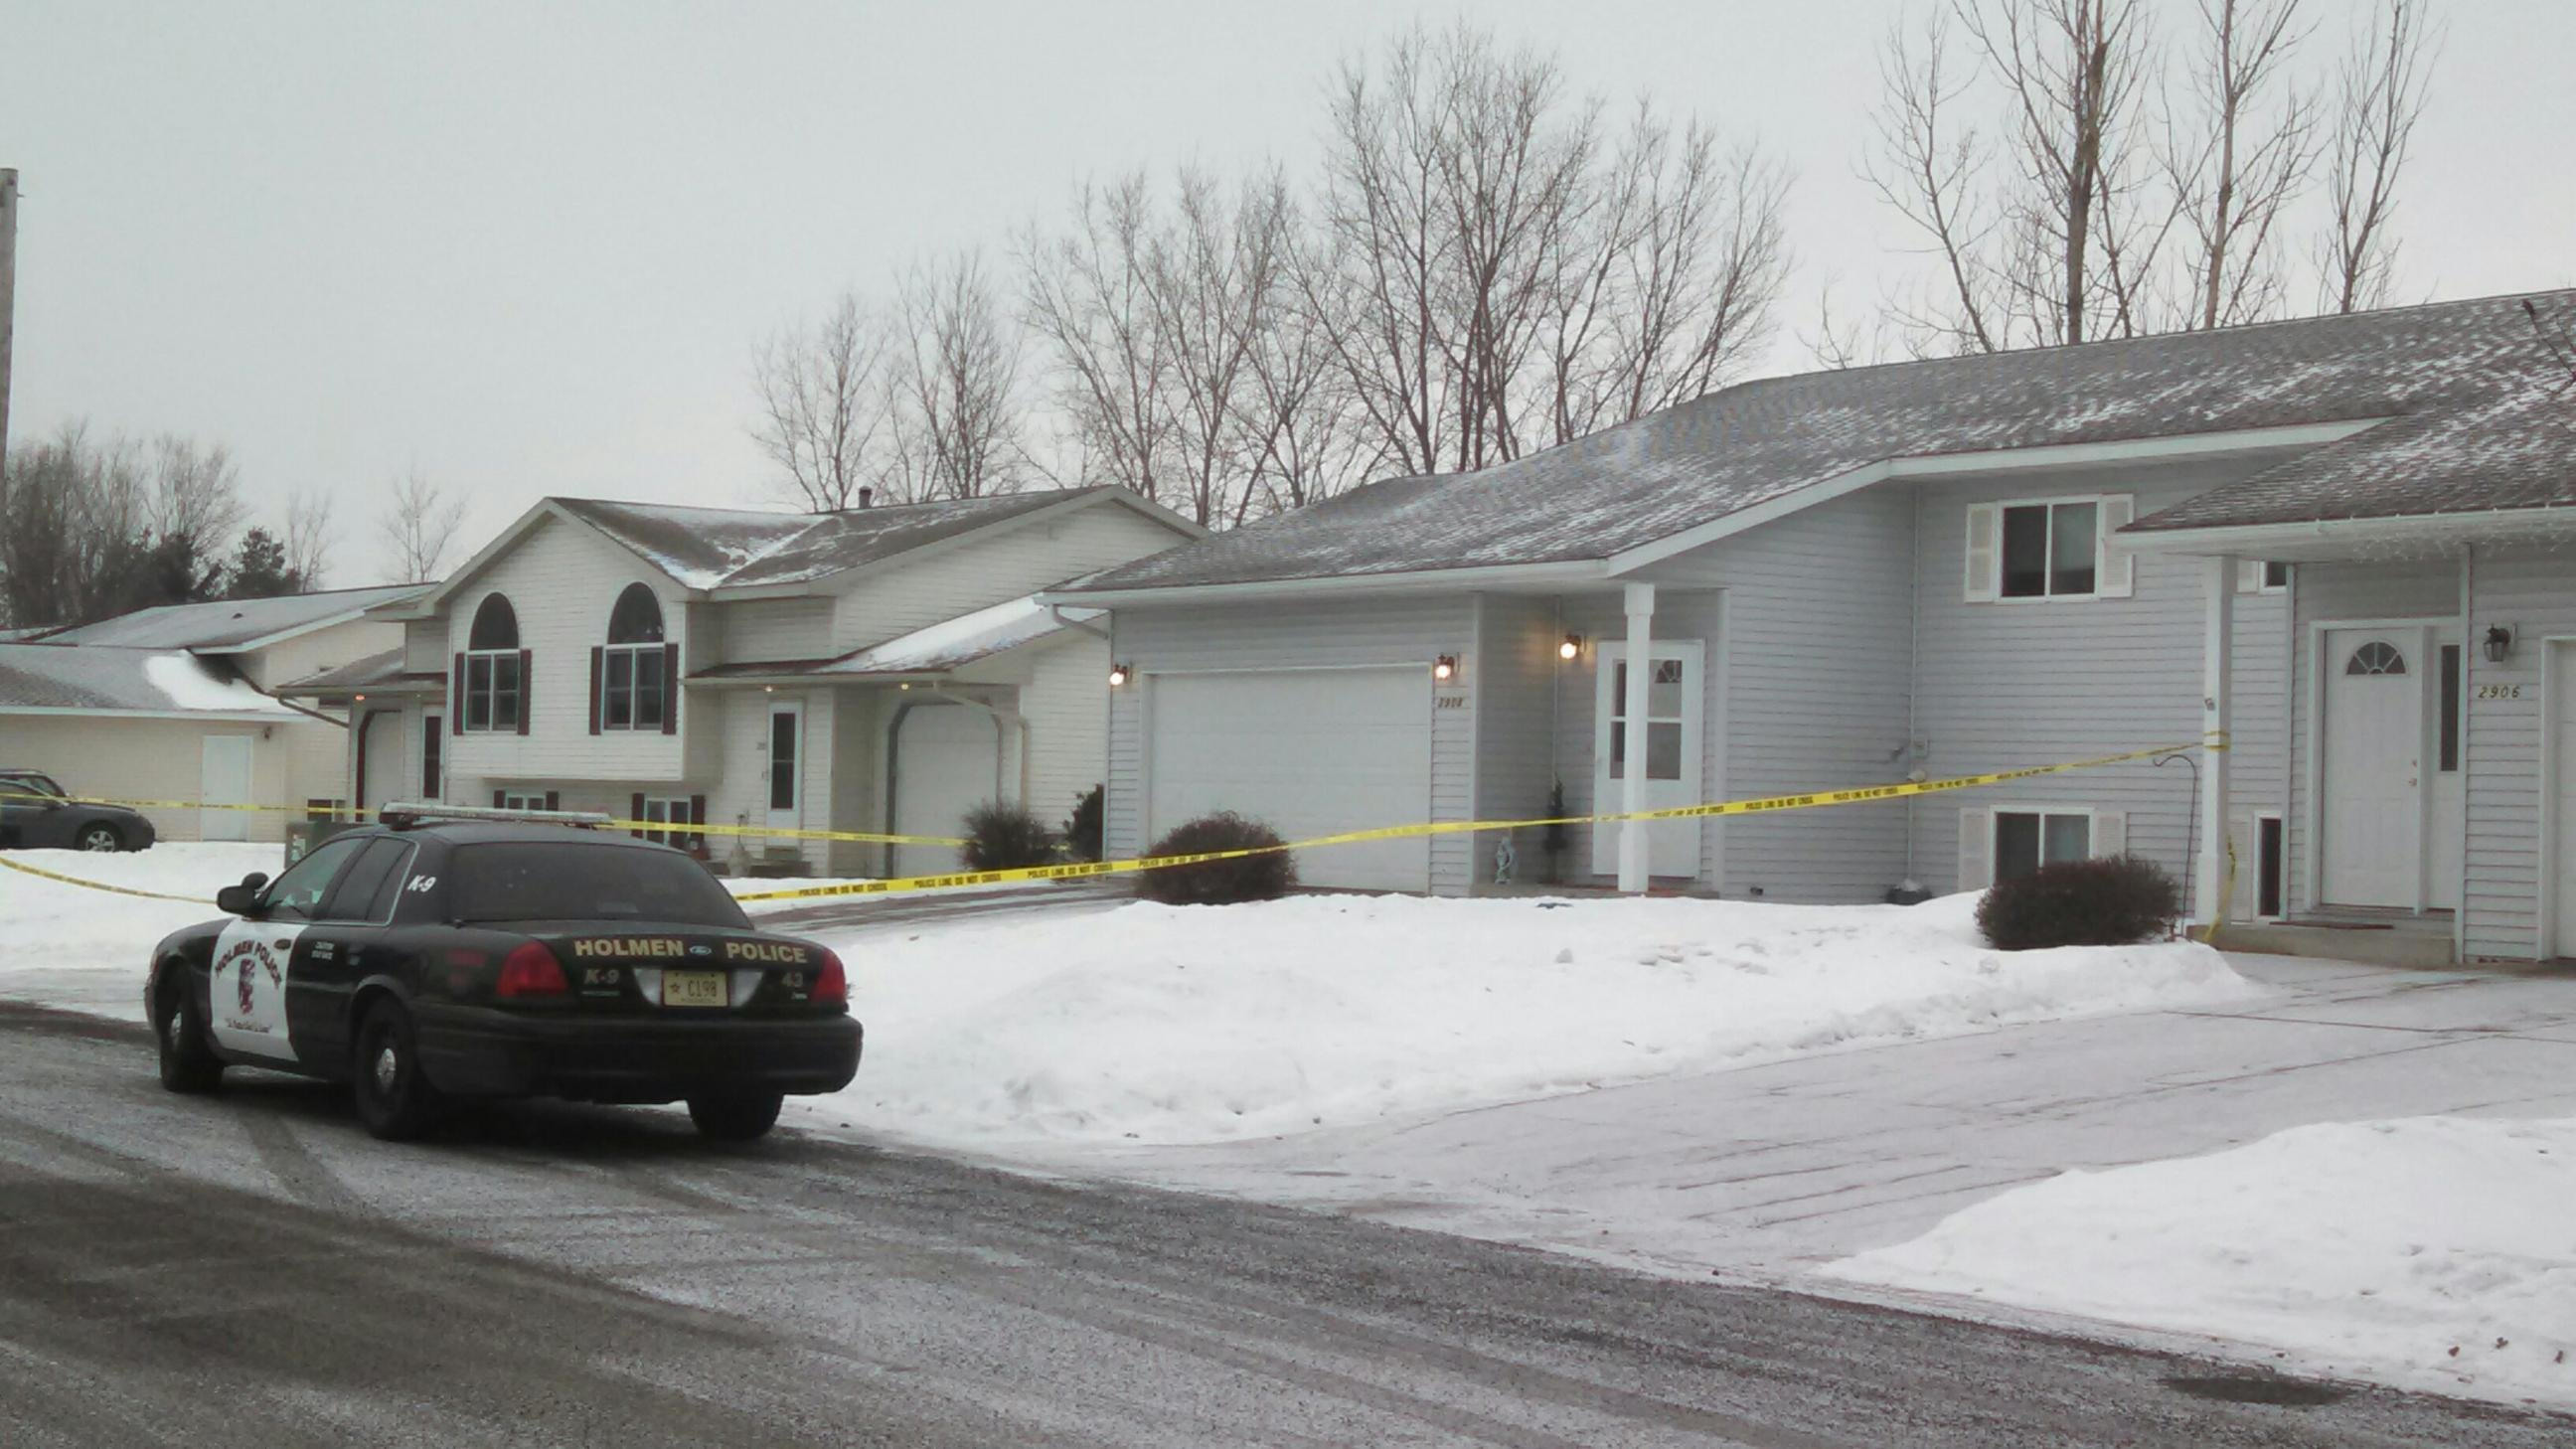 Photo from March 2, 2015 as police in Holmen investigate the homicide of Kristen Johnson.